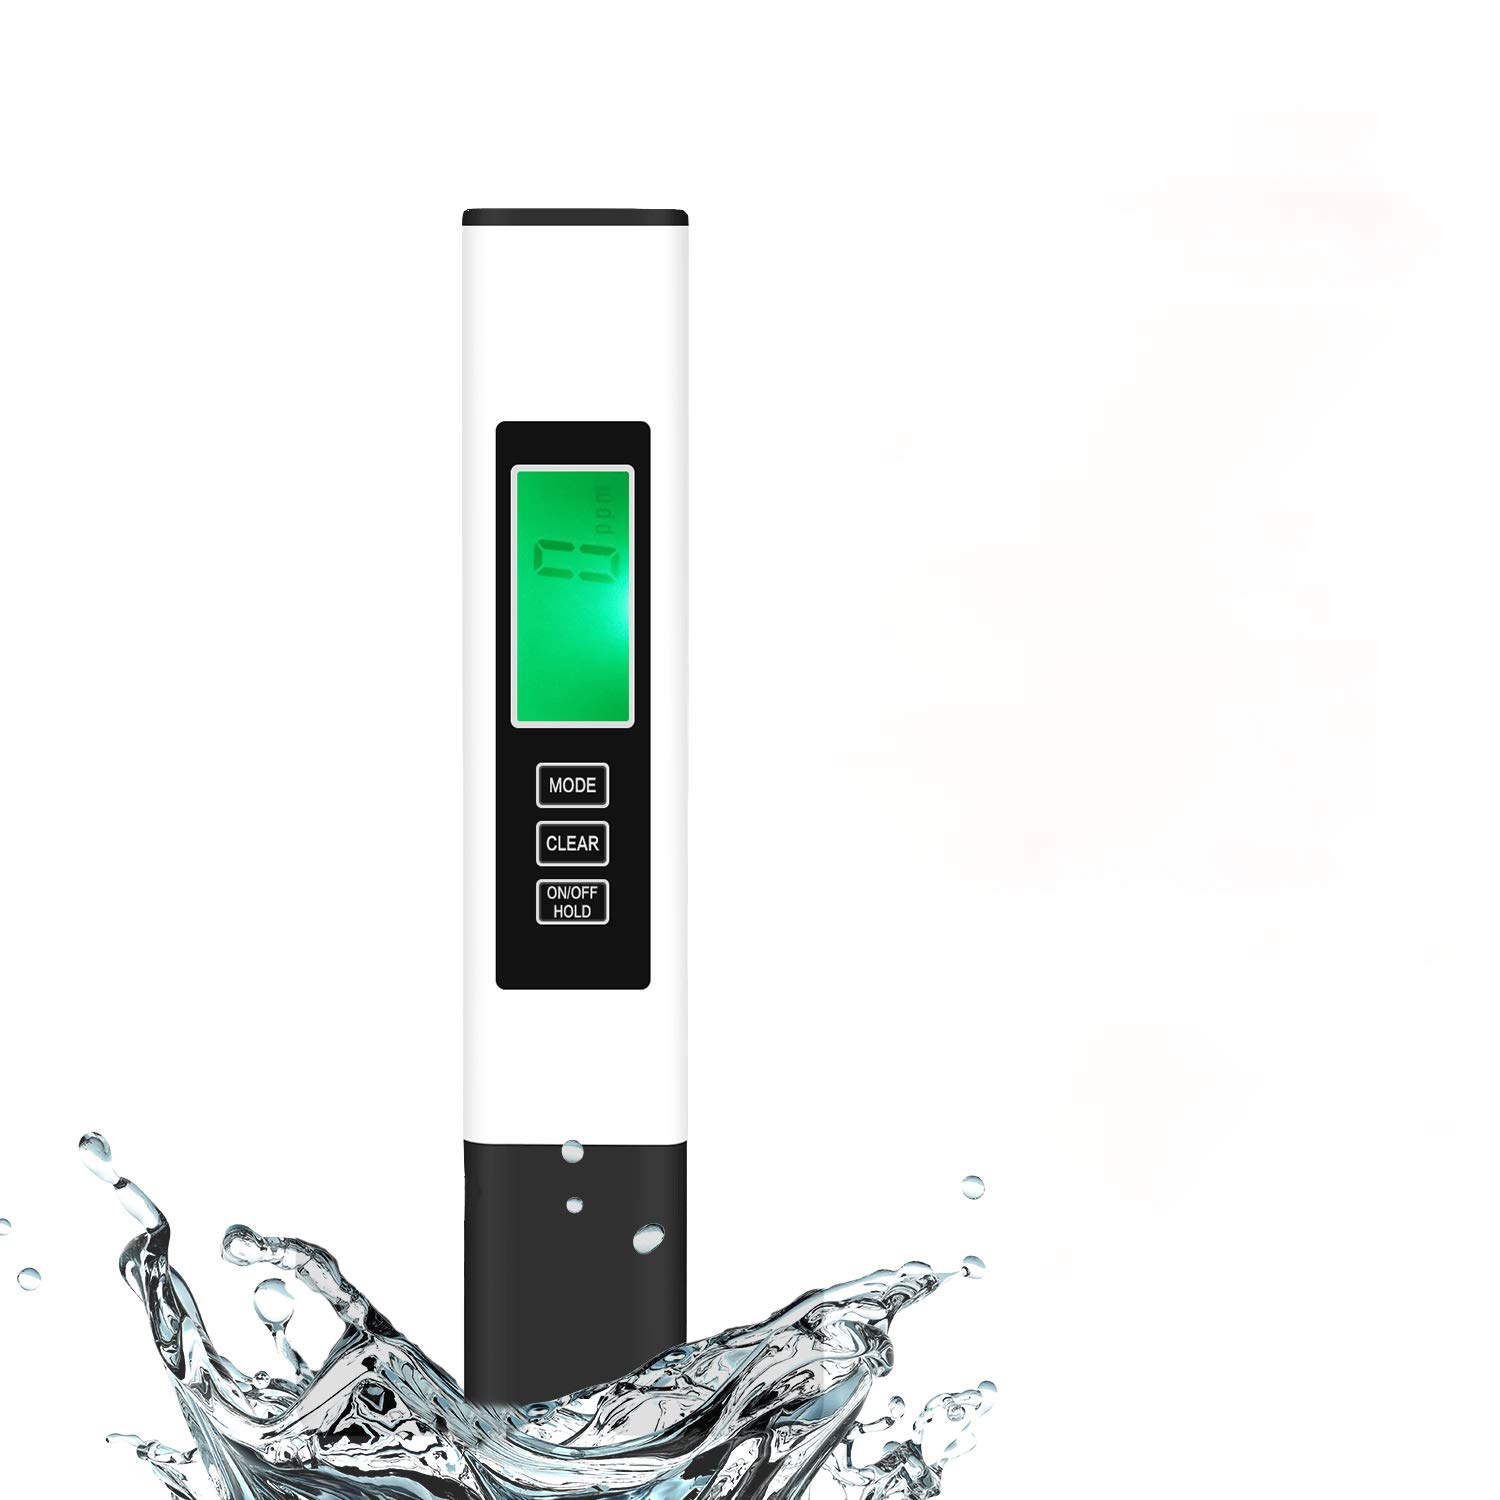 TDS Meter Digital Water Tester, Water Quality Tester, TDS Temperature & Conductivity Meter 3 in 1, Hydroponics EC Meter, ppm Meter for Home ATC Drinking Water, Aquarium and More